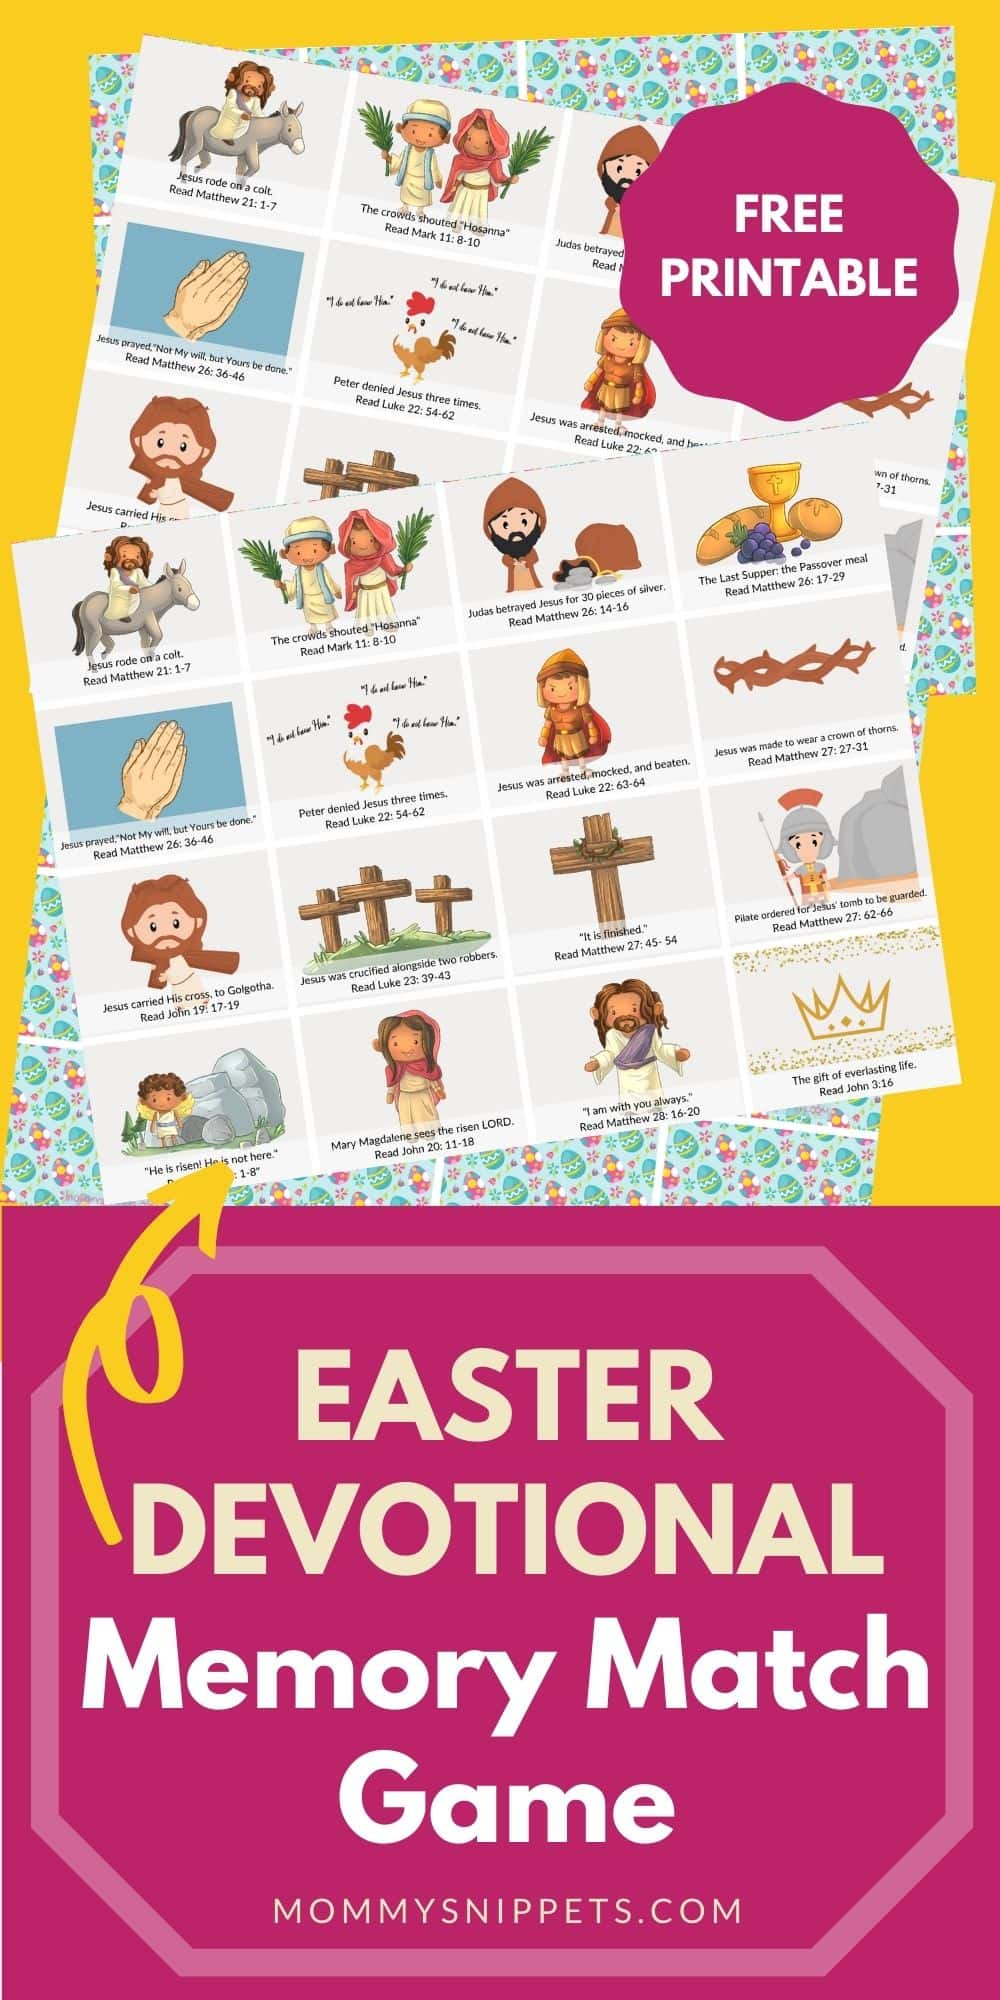 The Easter Devotional Memory Match Game Your Family Will Love (Free Printable)